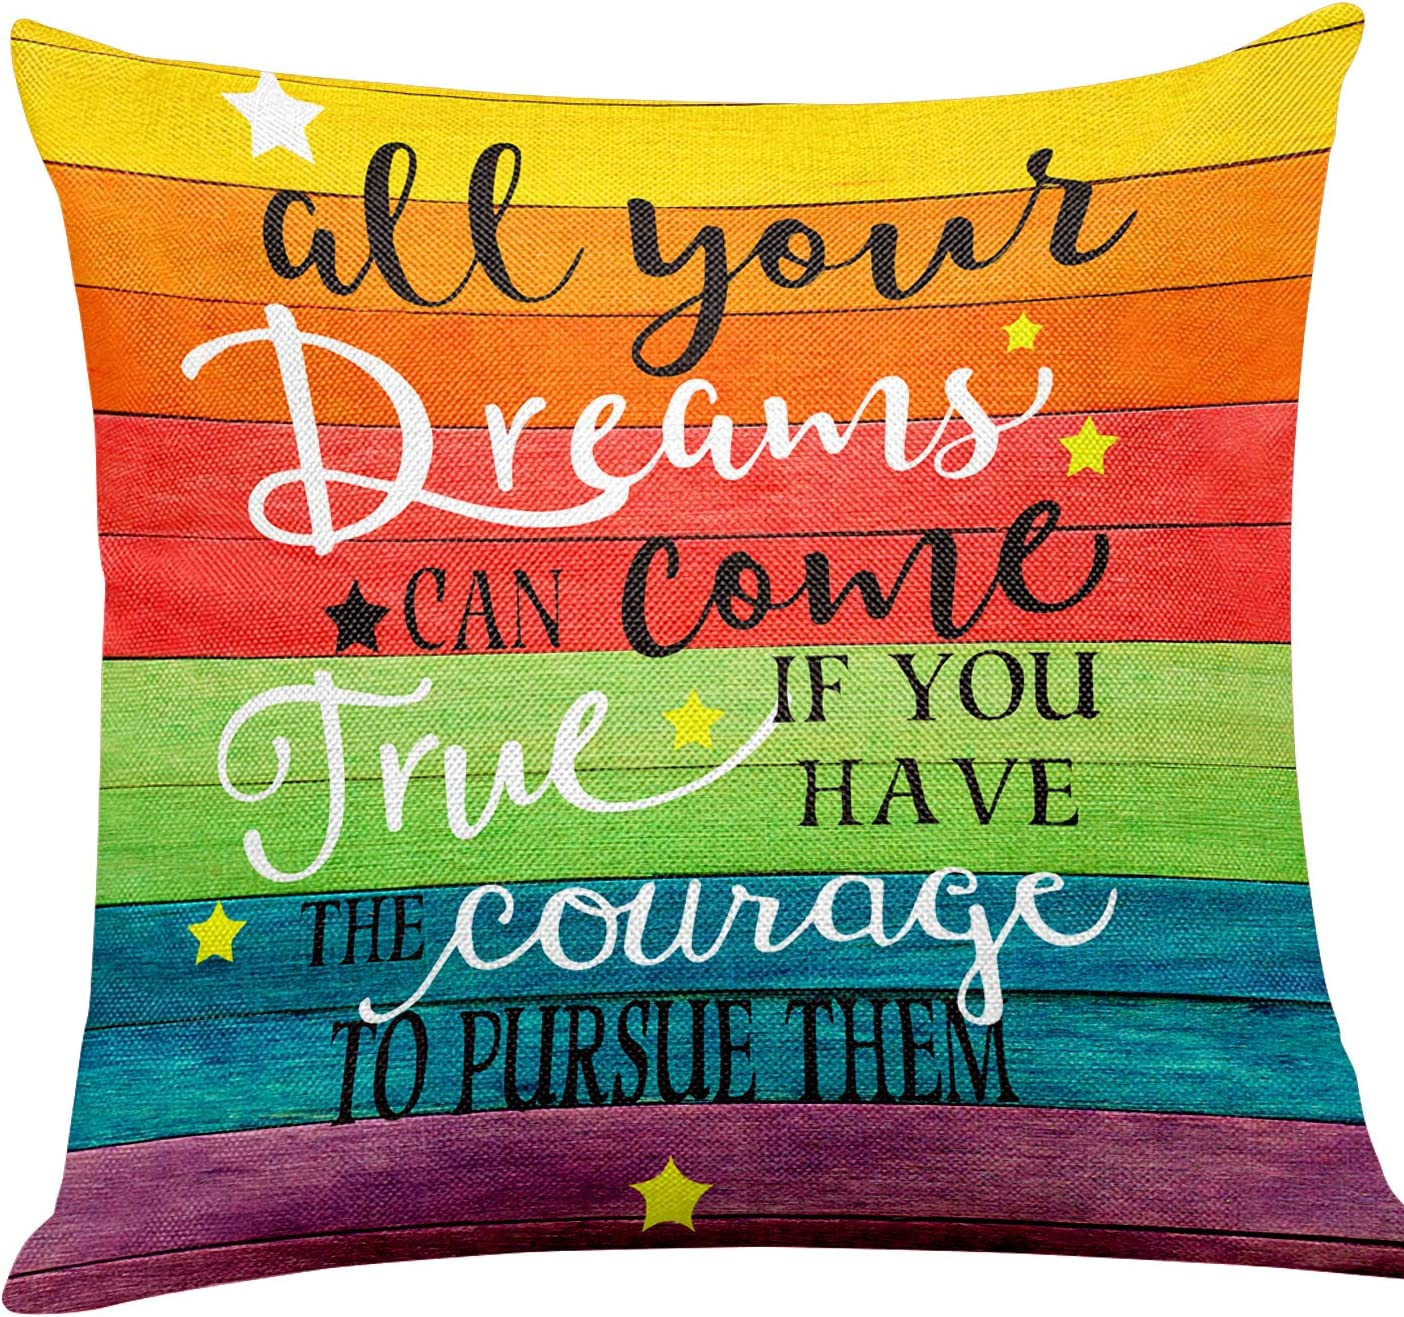 """yuzi-n """"All Your Dreams Can Come True"""" Inspirational Quote Pillow Covers, Inspirational Gifts Pillow Covers for Kids Girl Sister mom Women, Office Teen Boy Girl Room Sofa Couch Decor 18 x 18 Inch"""